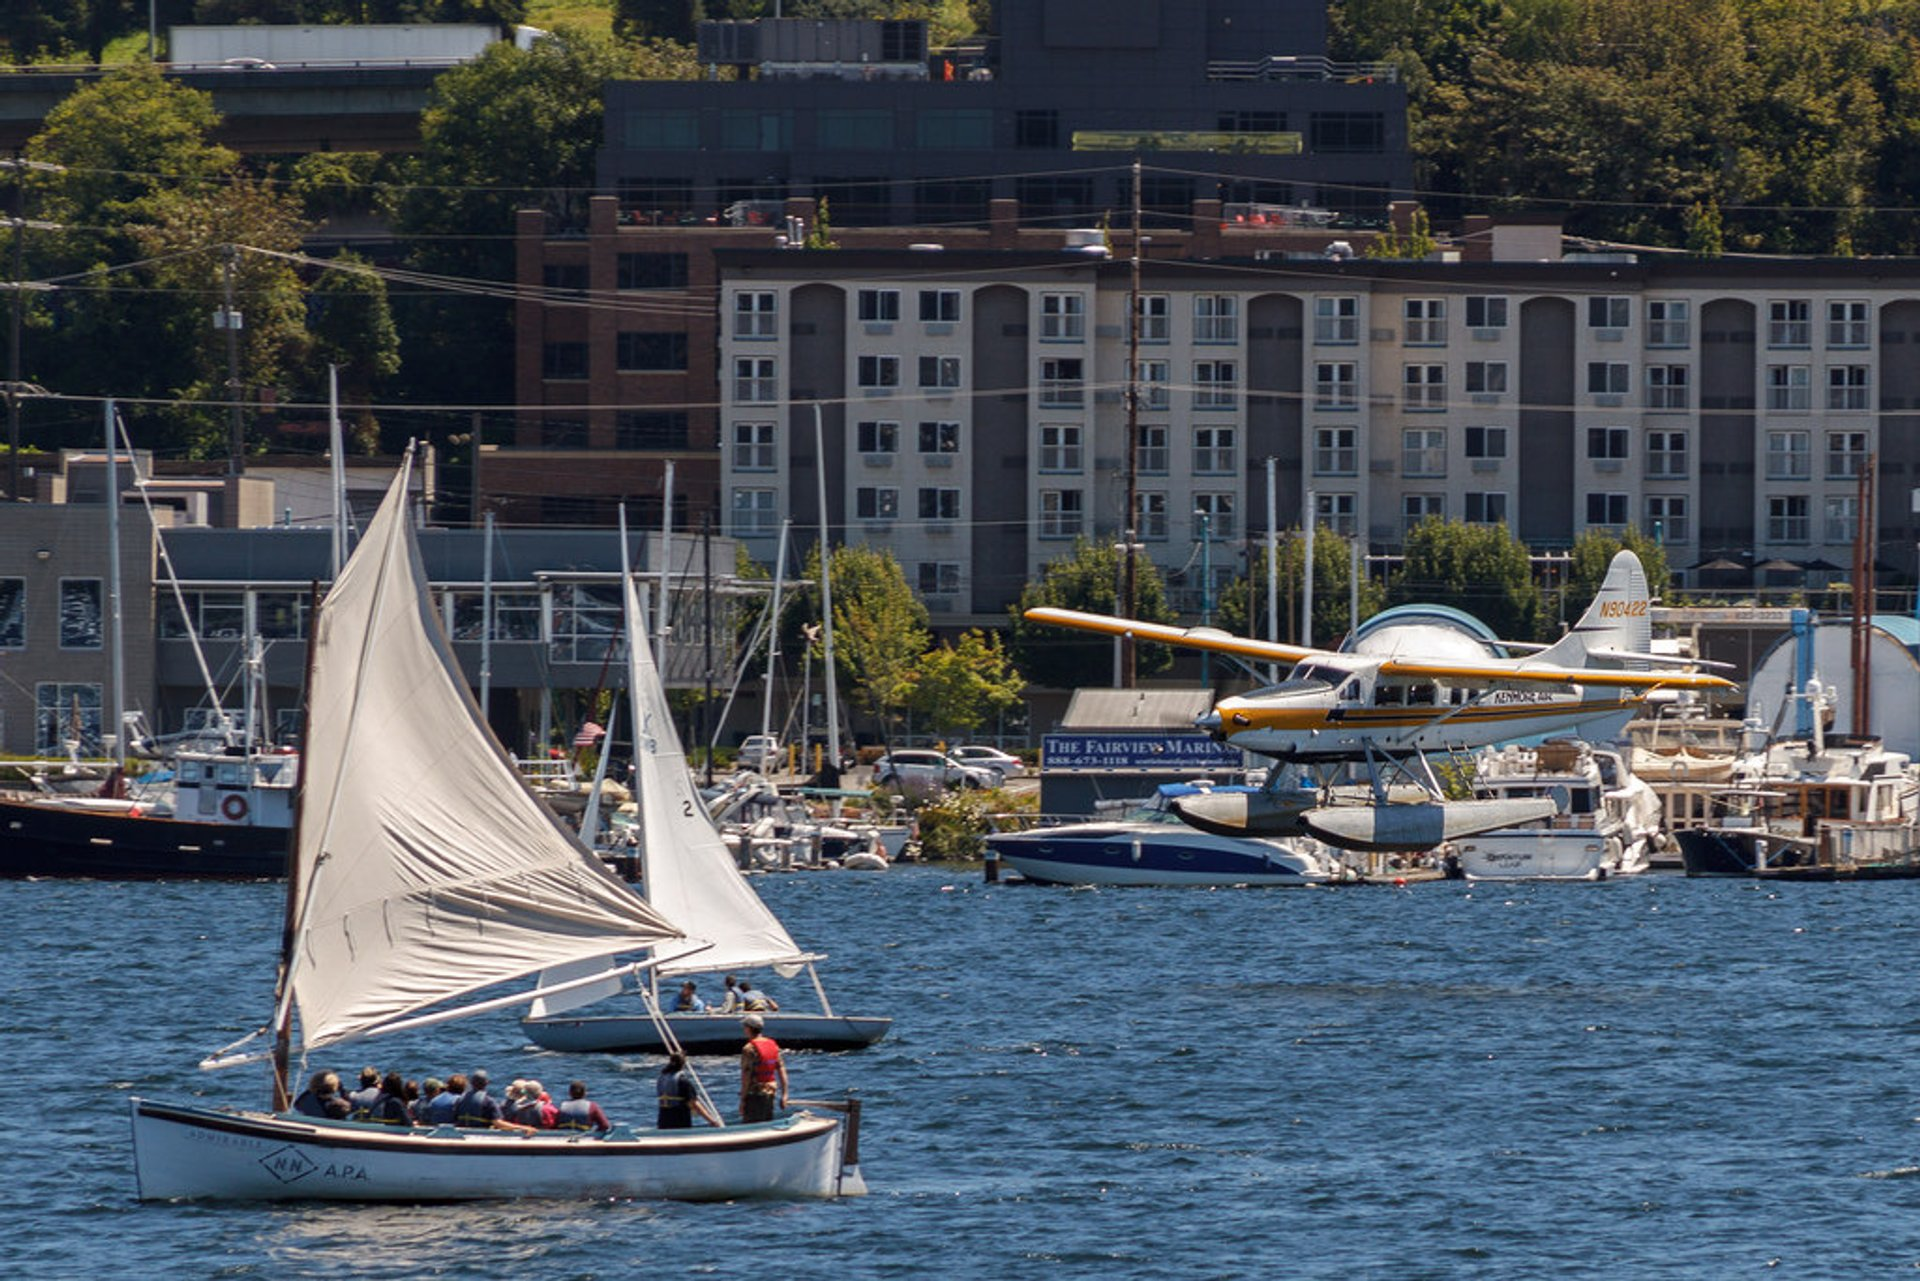 It was fascinating watching seaplanes takeoff and land on Lake Union, WA, threading their way through dozens of sail boats without colliding 2019